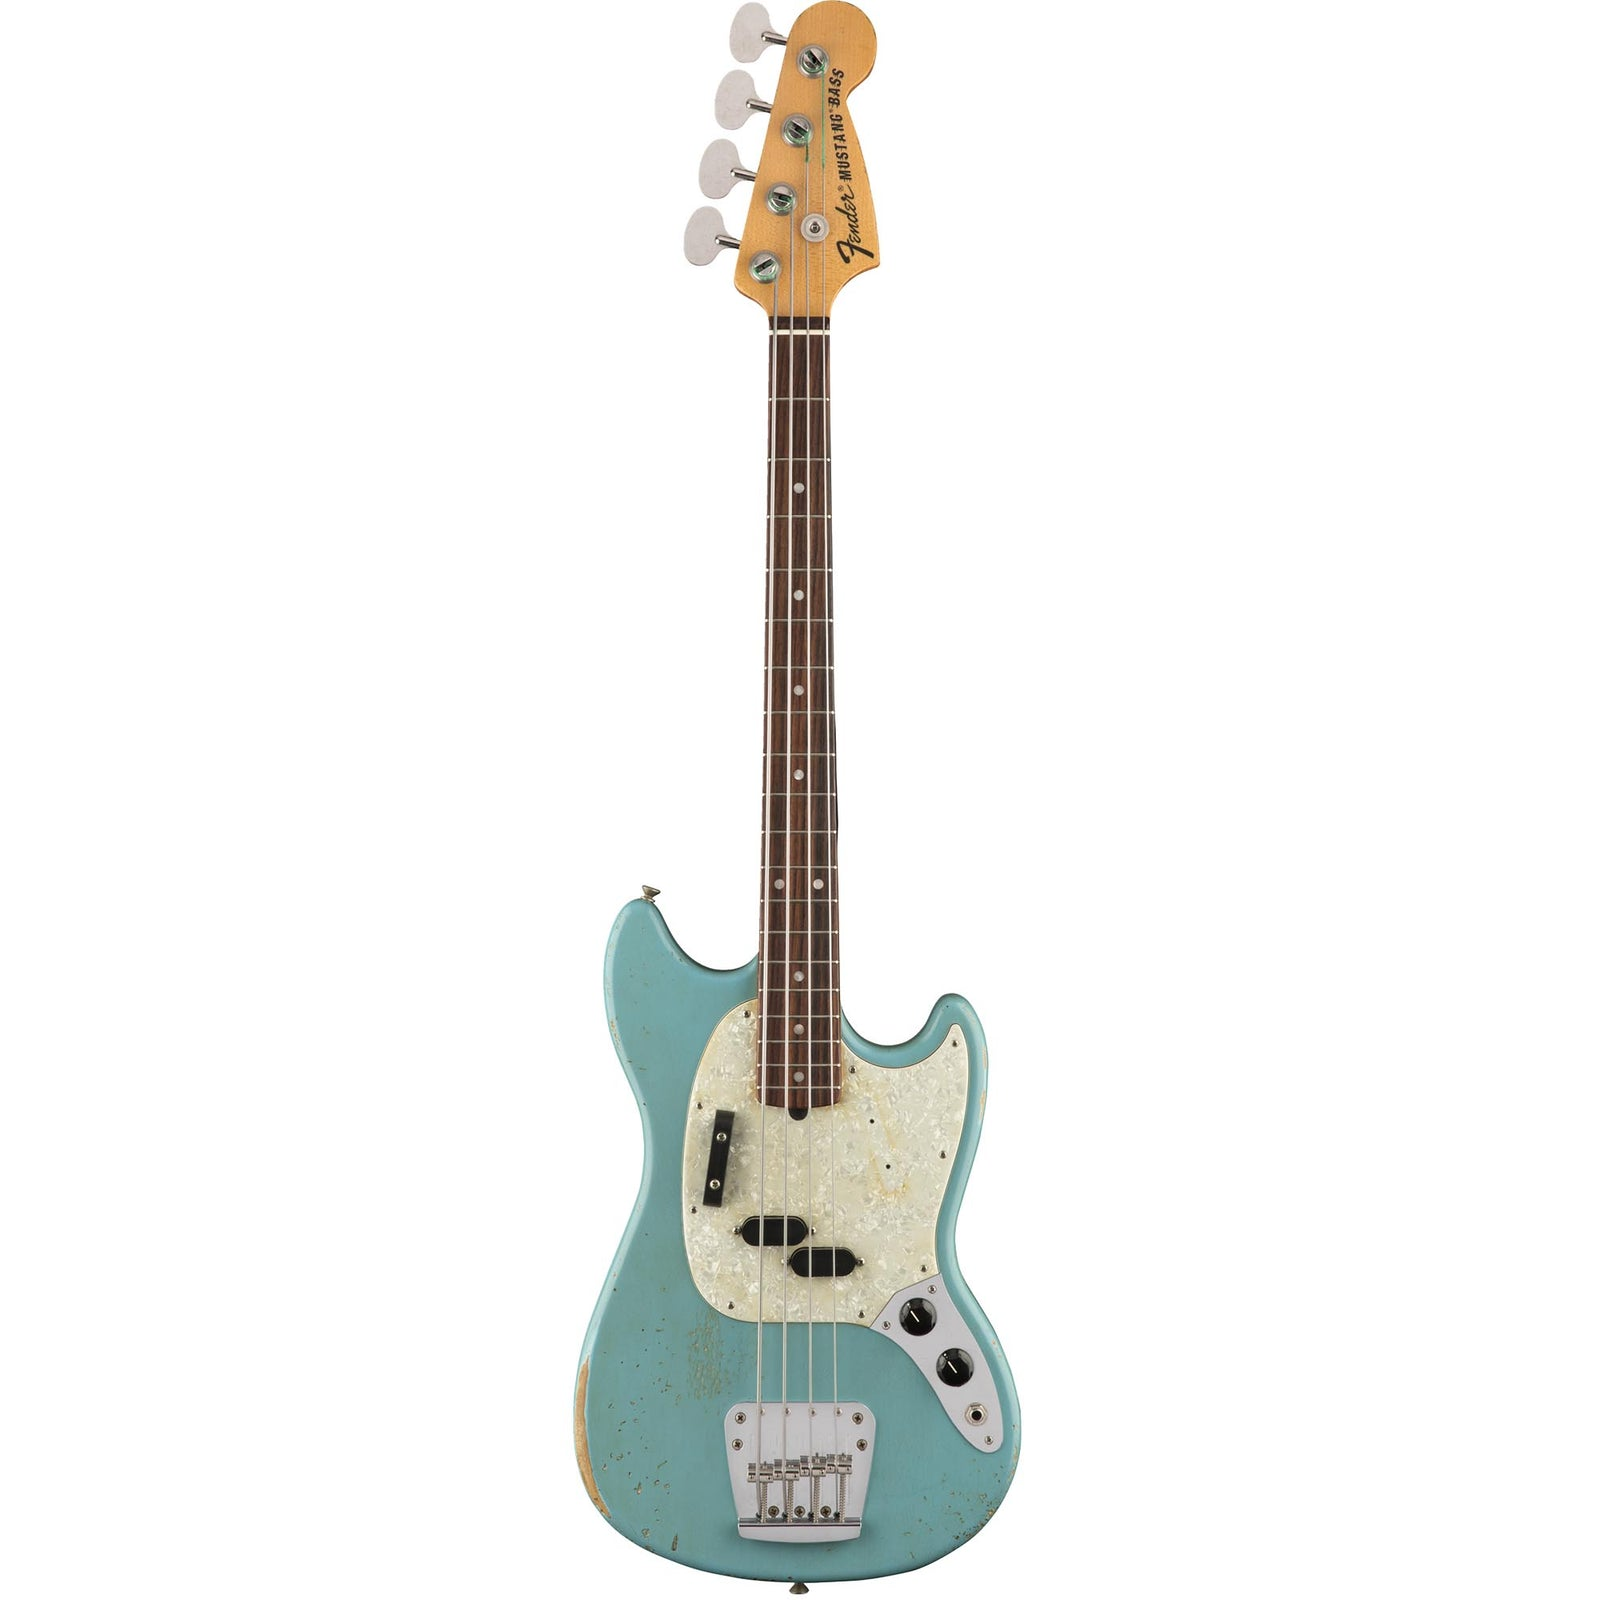 Fender JMJ Mustang Bass - Rosewood Fingerboard - Faded Daphne Blue